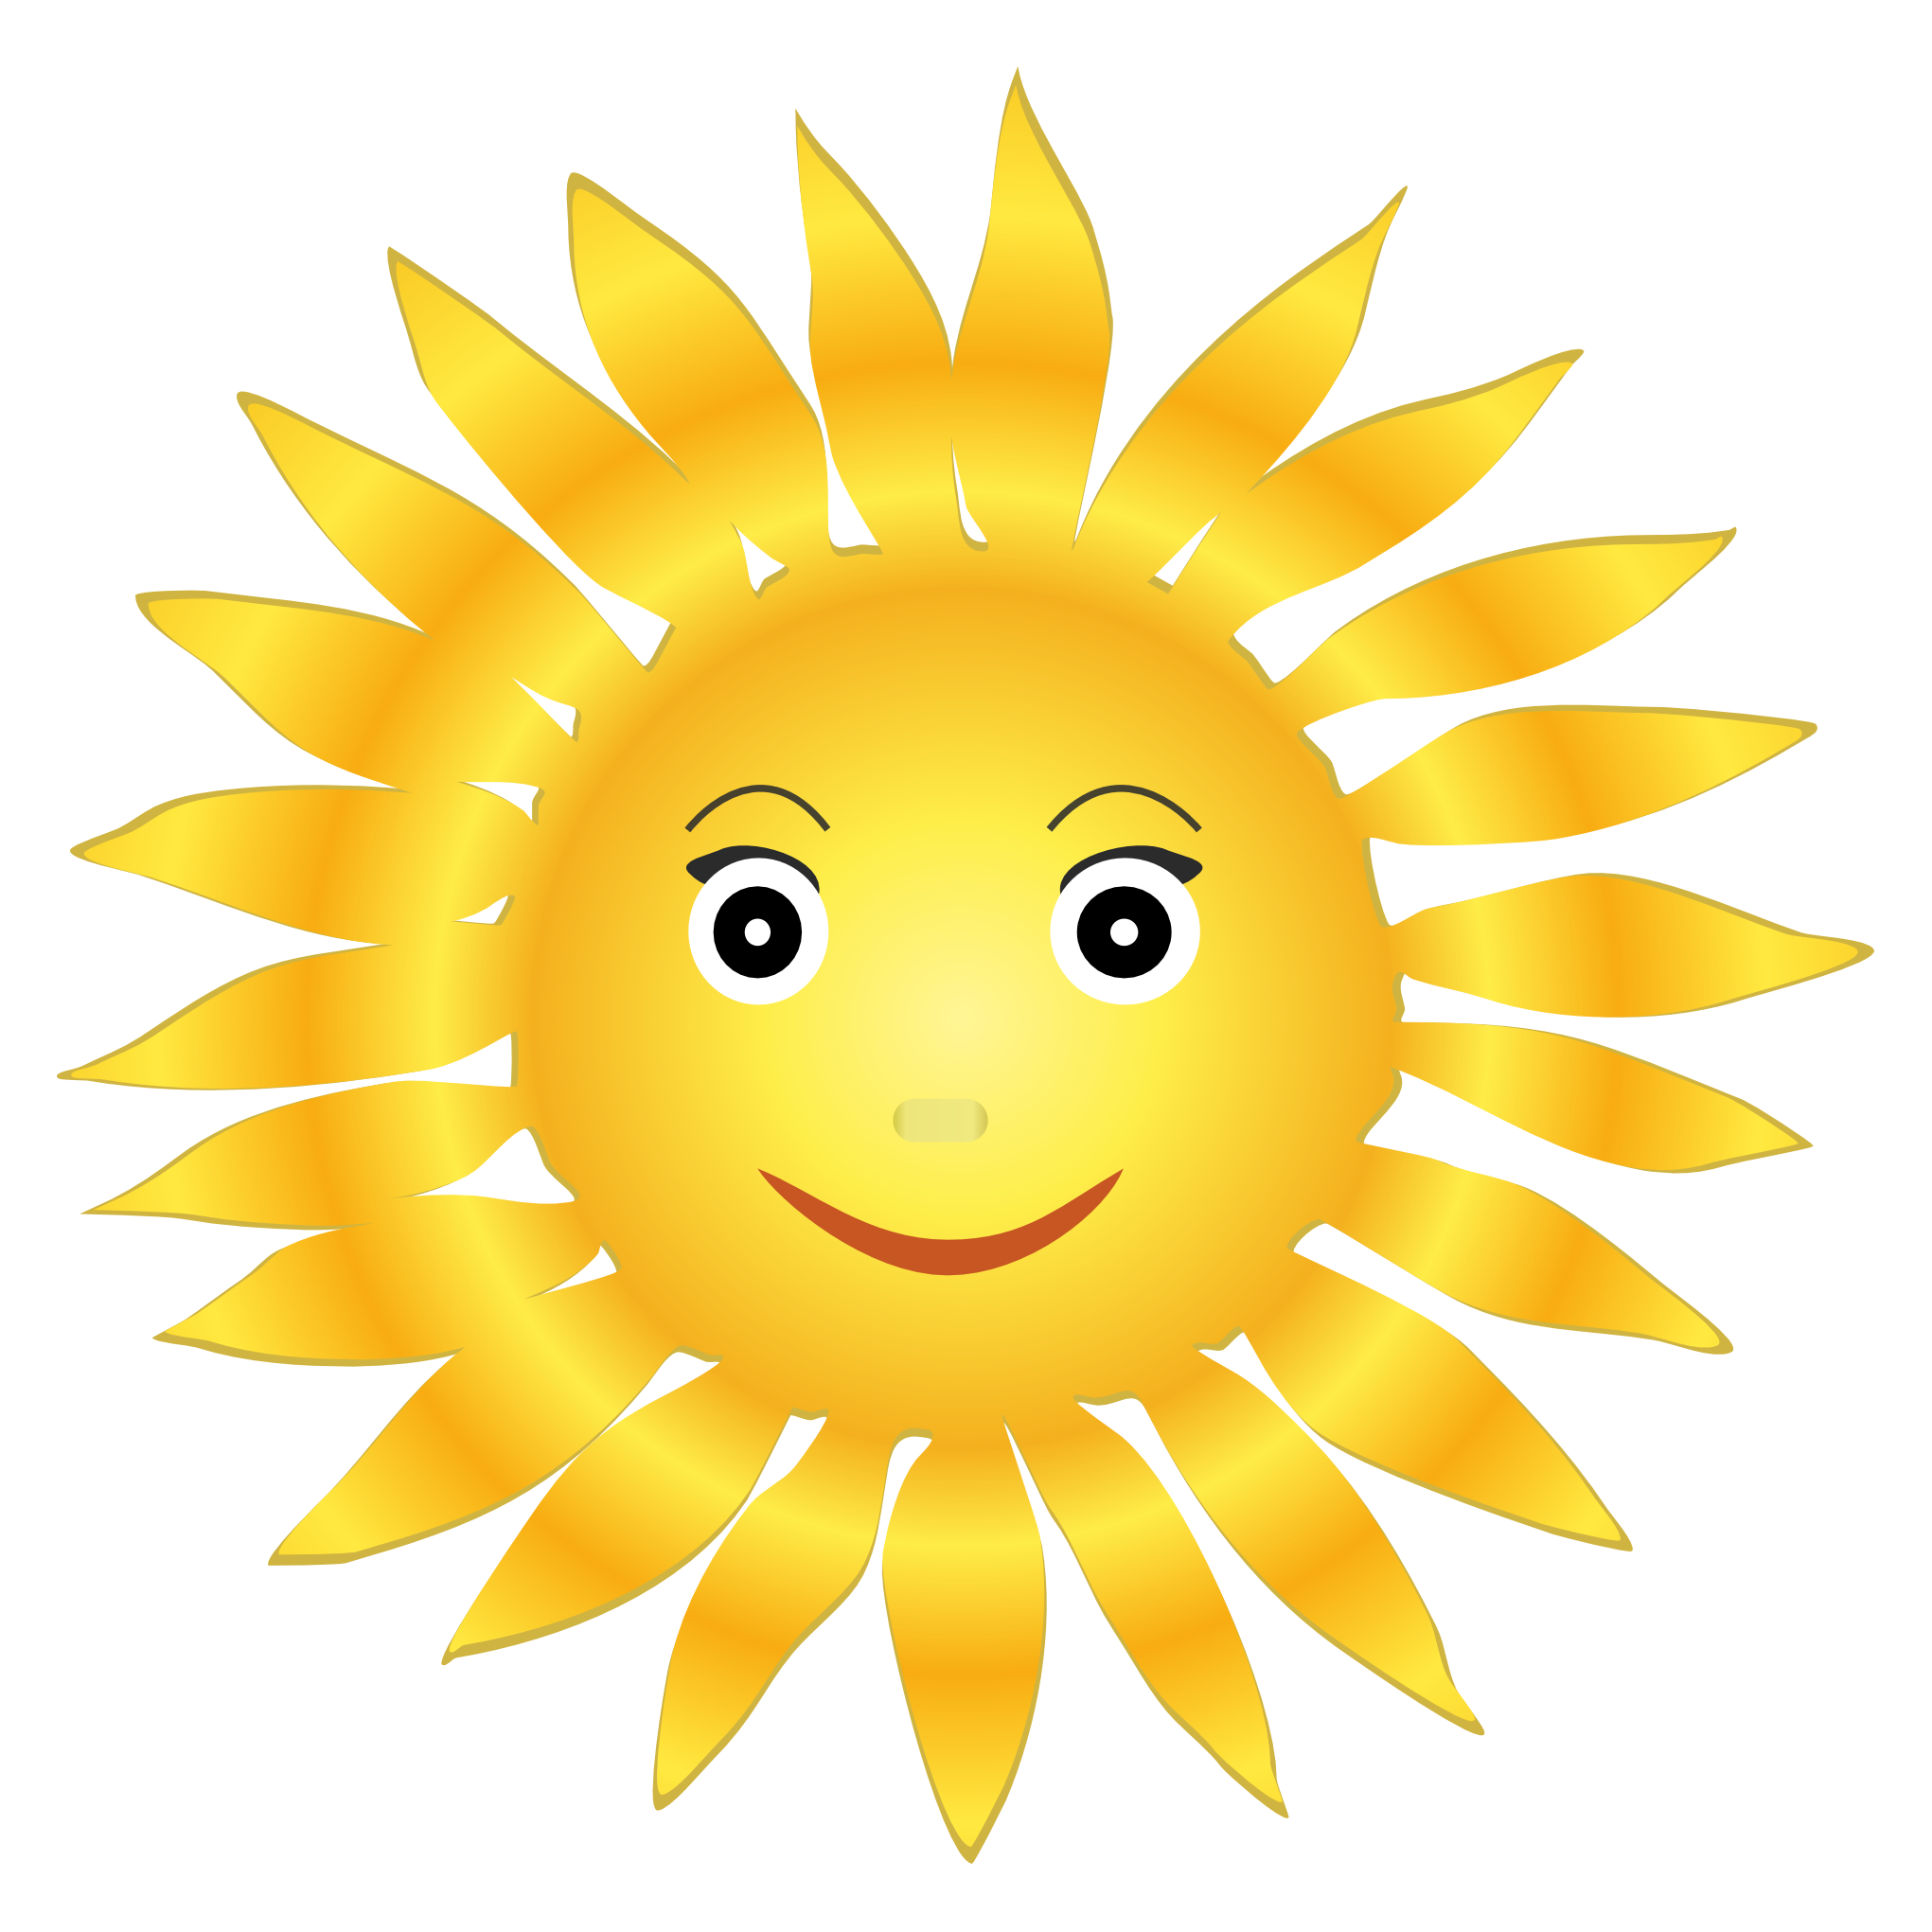 Sunflower Seeds And Sun Smiley Images image #48206